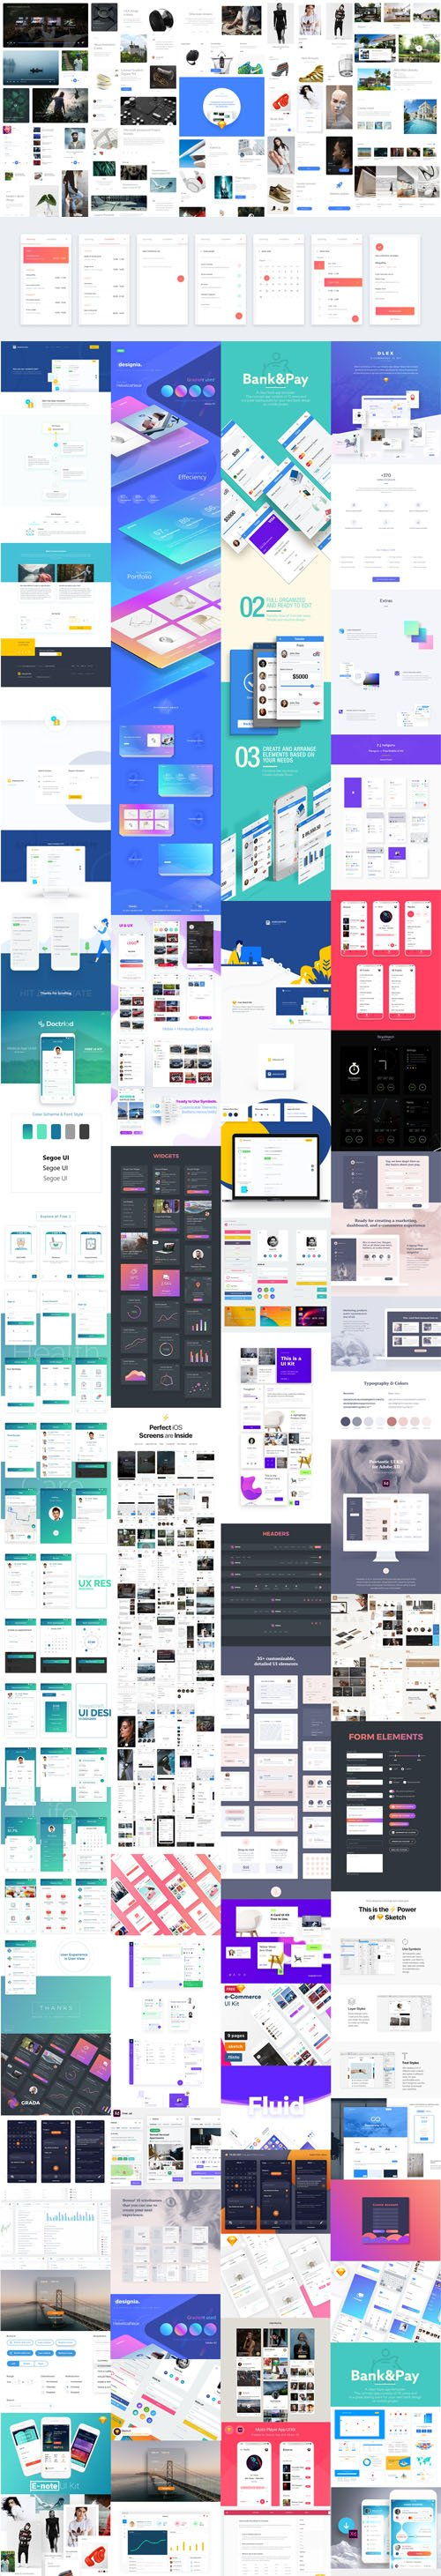 50+ Best UI Design Kits of 2017-2018